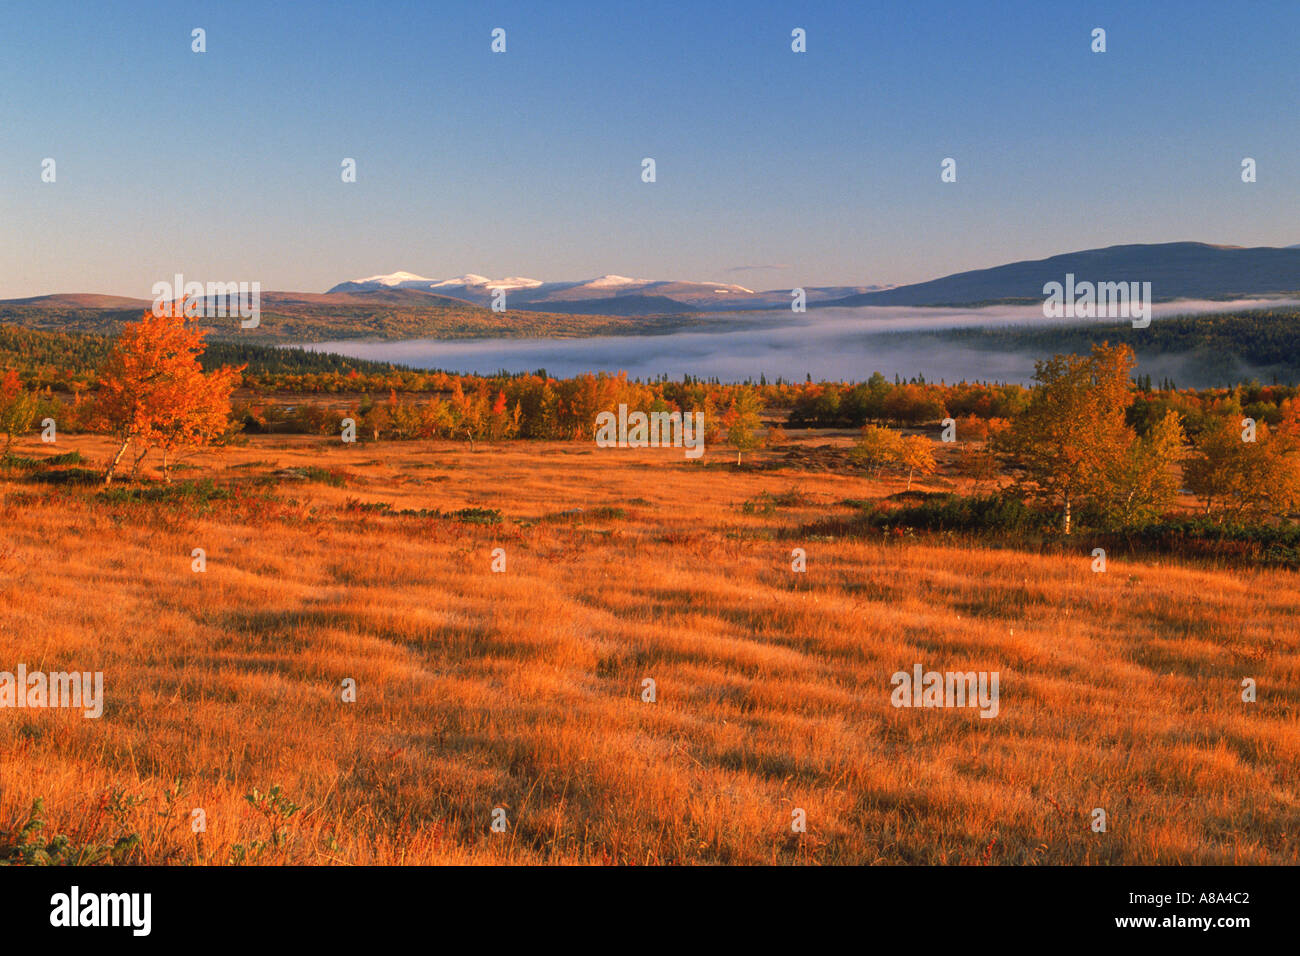 Autumn colors in mountains of Harjedalen in Northern Sweden at sunrise - Stock Image